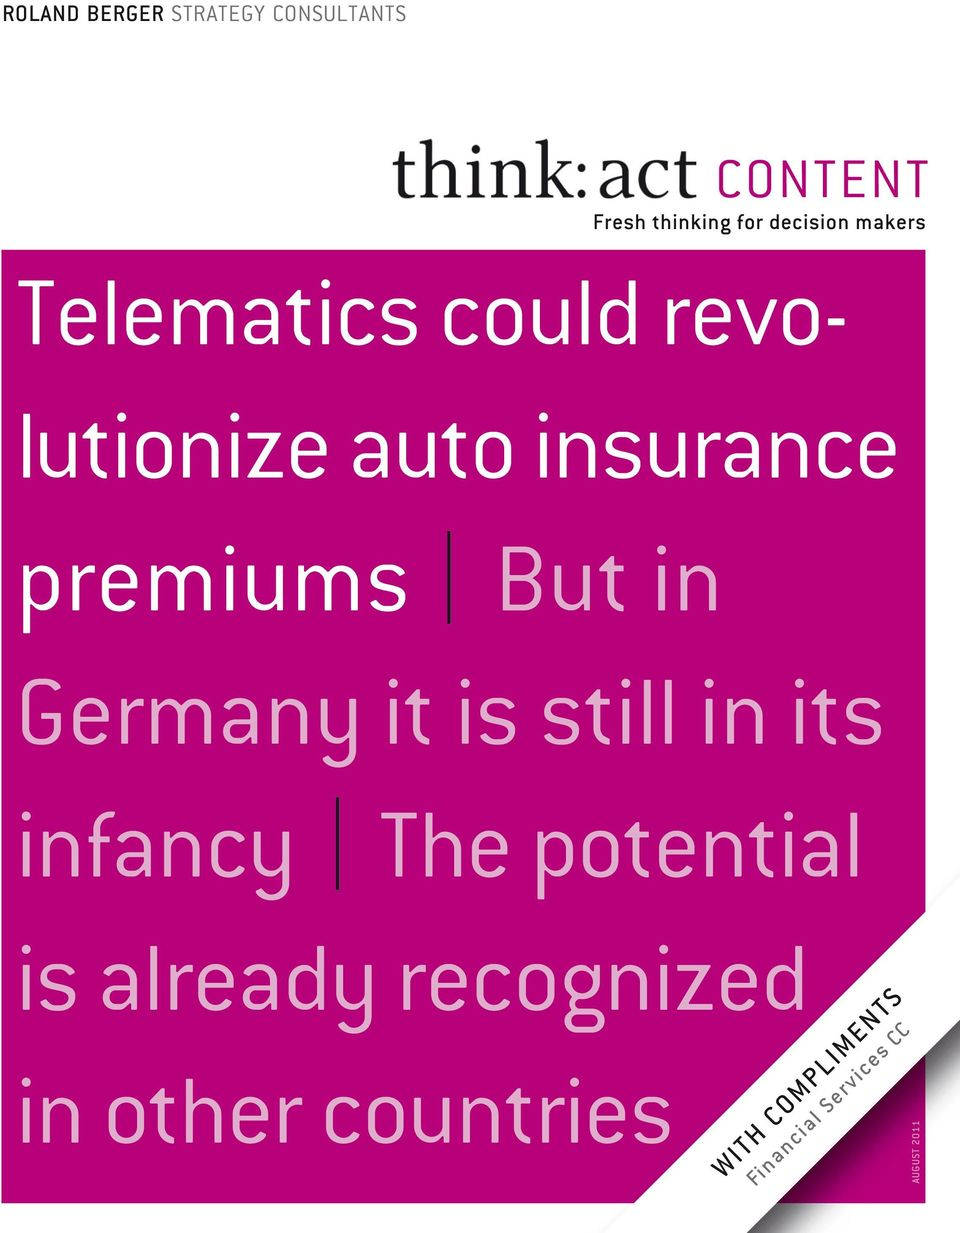 premiums But in Germany it is still in its infancy The potential is